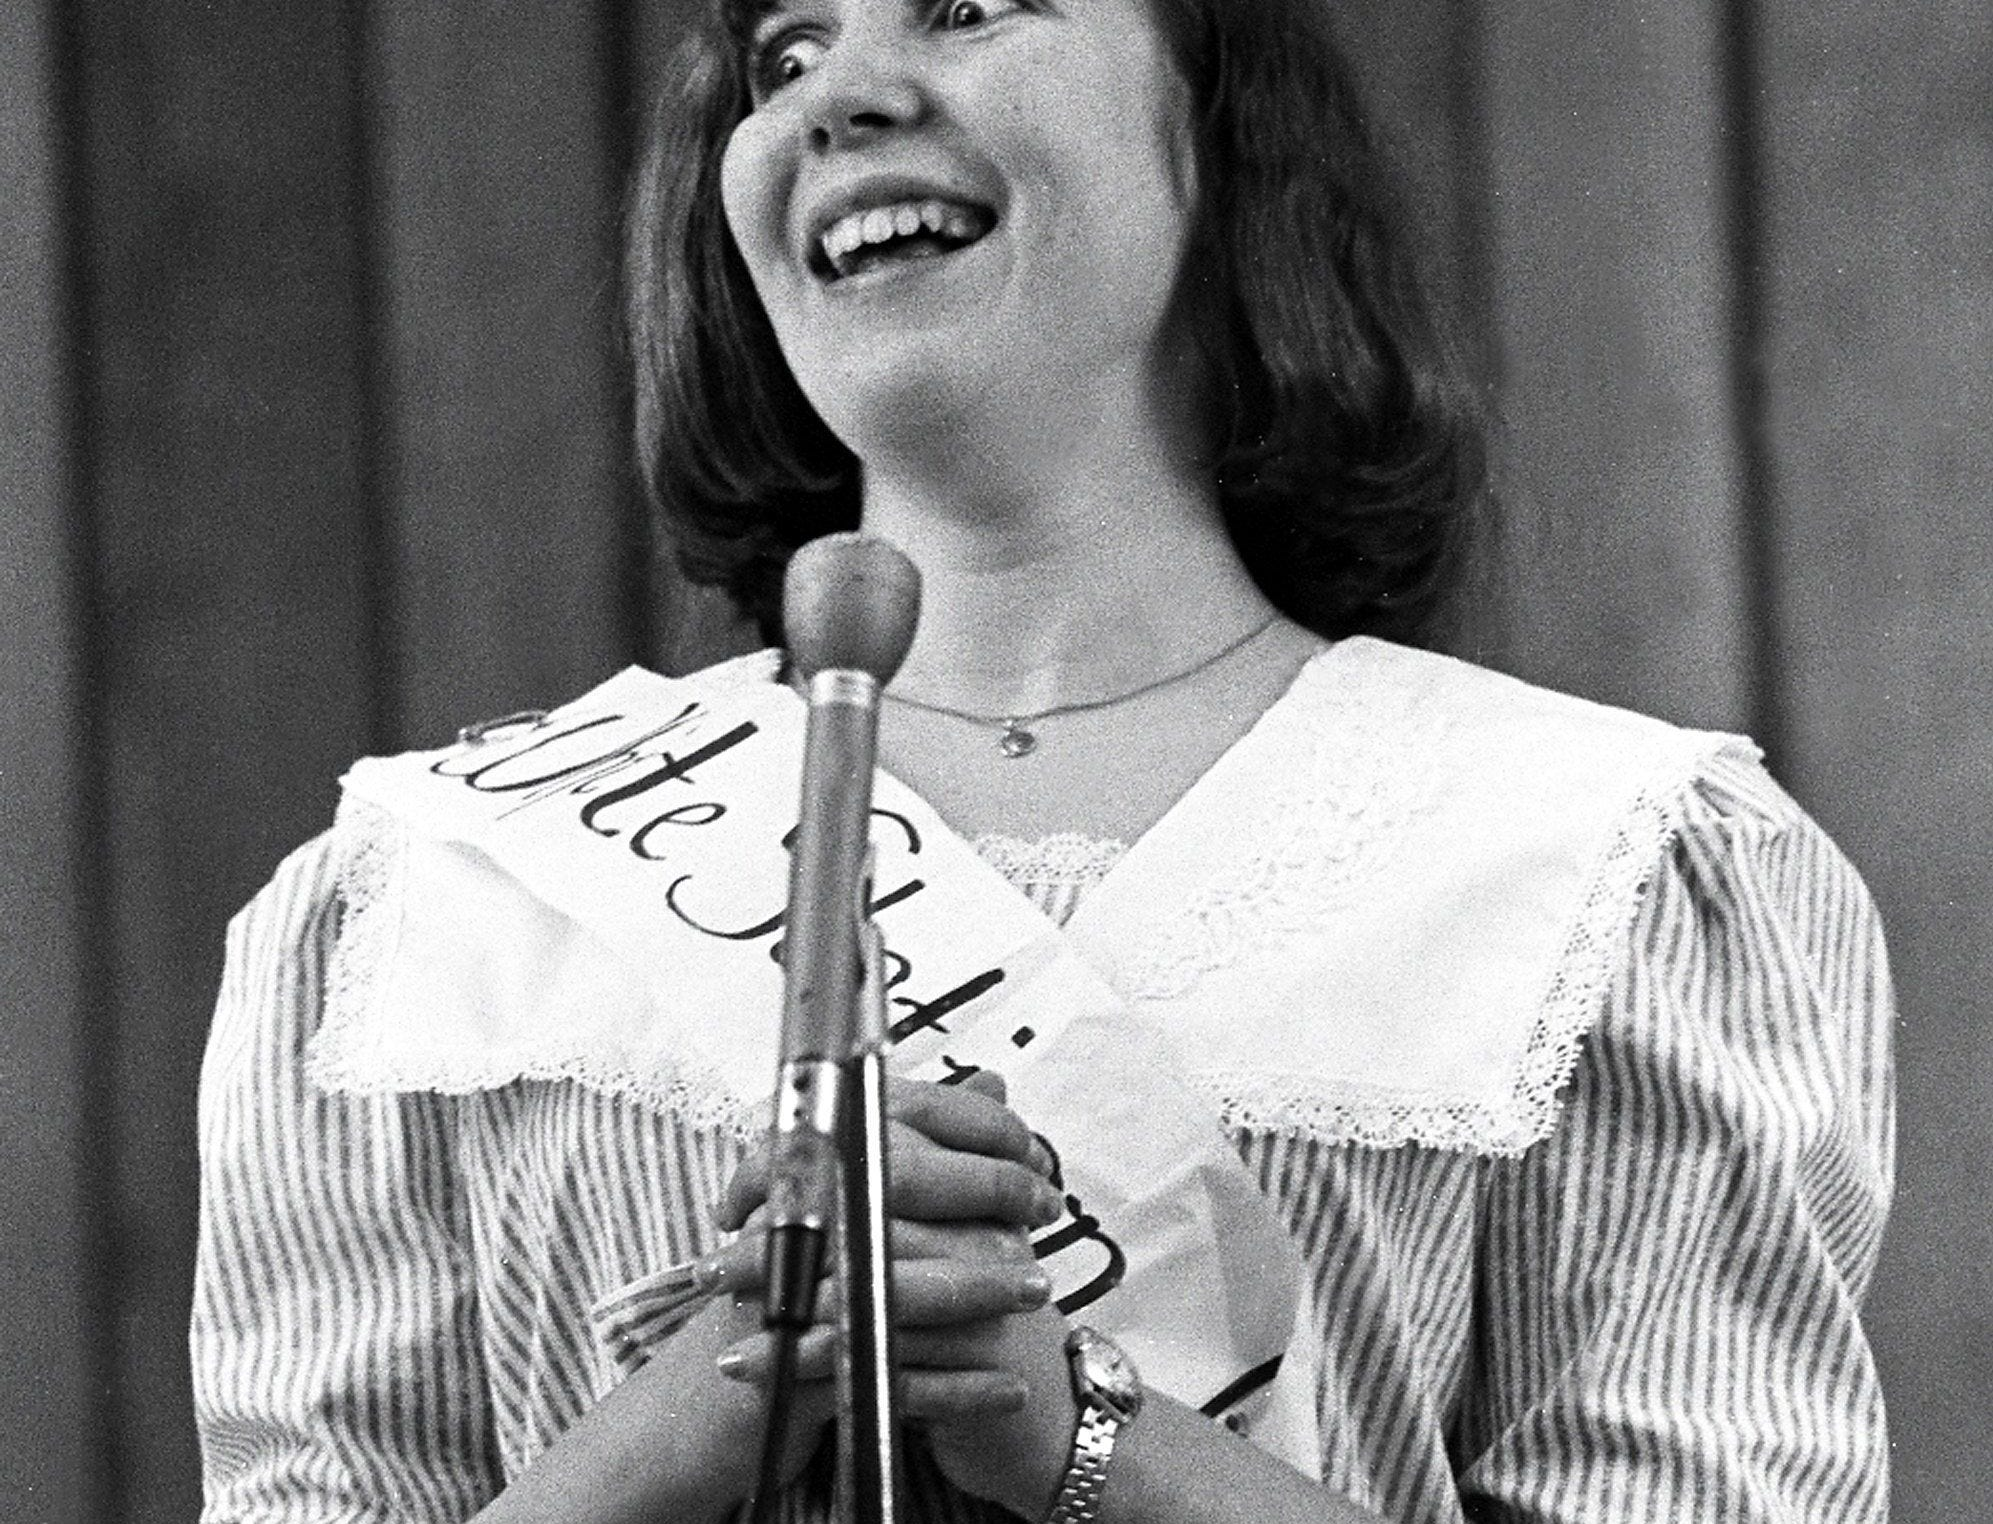 Jennifer Hurley's eyes lit up when she heard announcer Irwin Cantor say rallentando, a gradually slackening musical tempo. She quickly stepped back to the microphone and without hesitation spelled the word correctly to become the 1987 Memphis-Shelby County Spelling Bee champion on March 21, 1987.